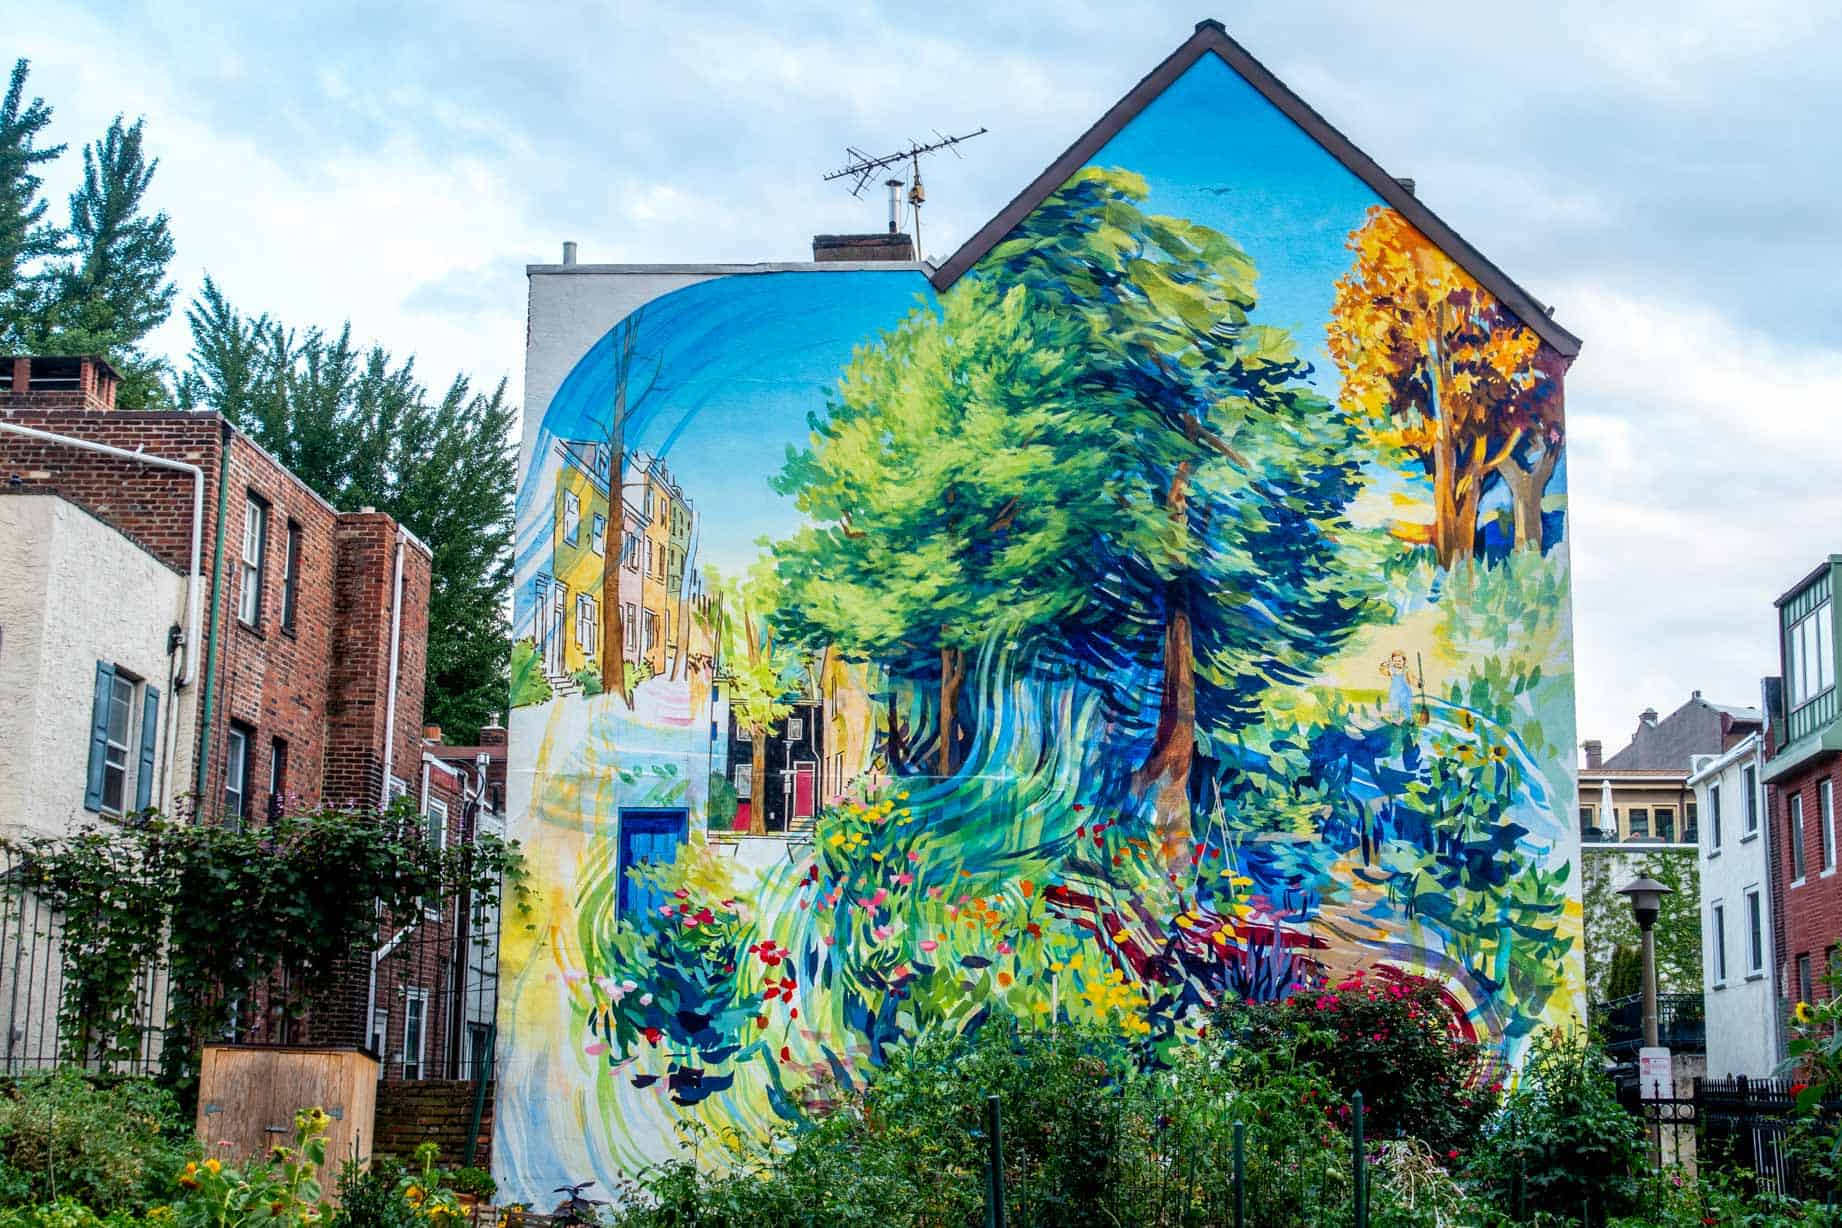 Mural of trees and flowers